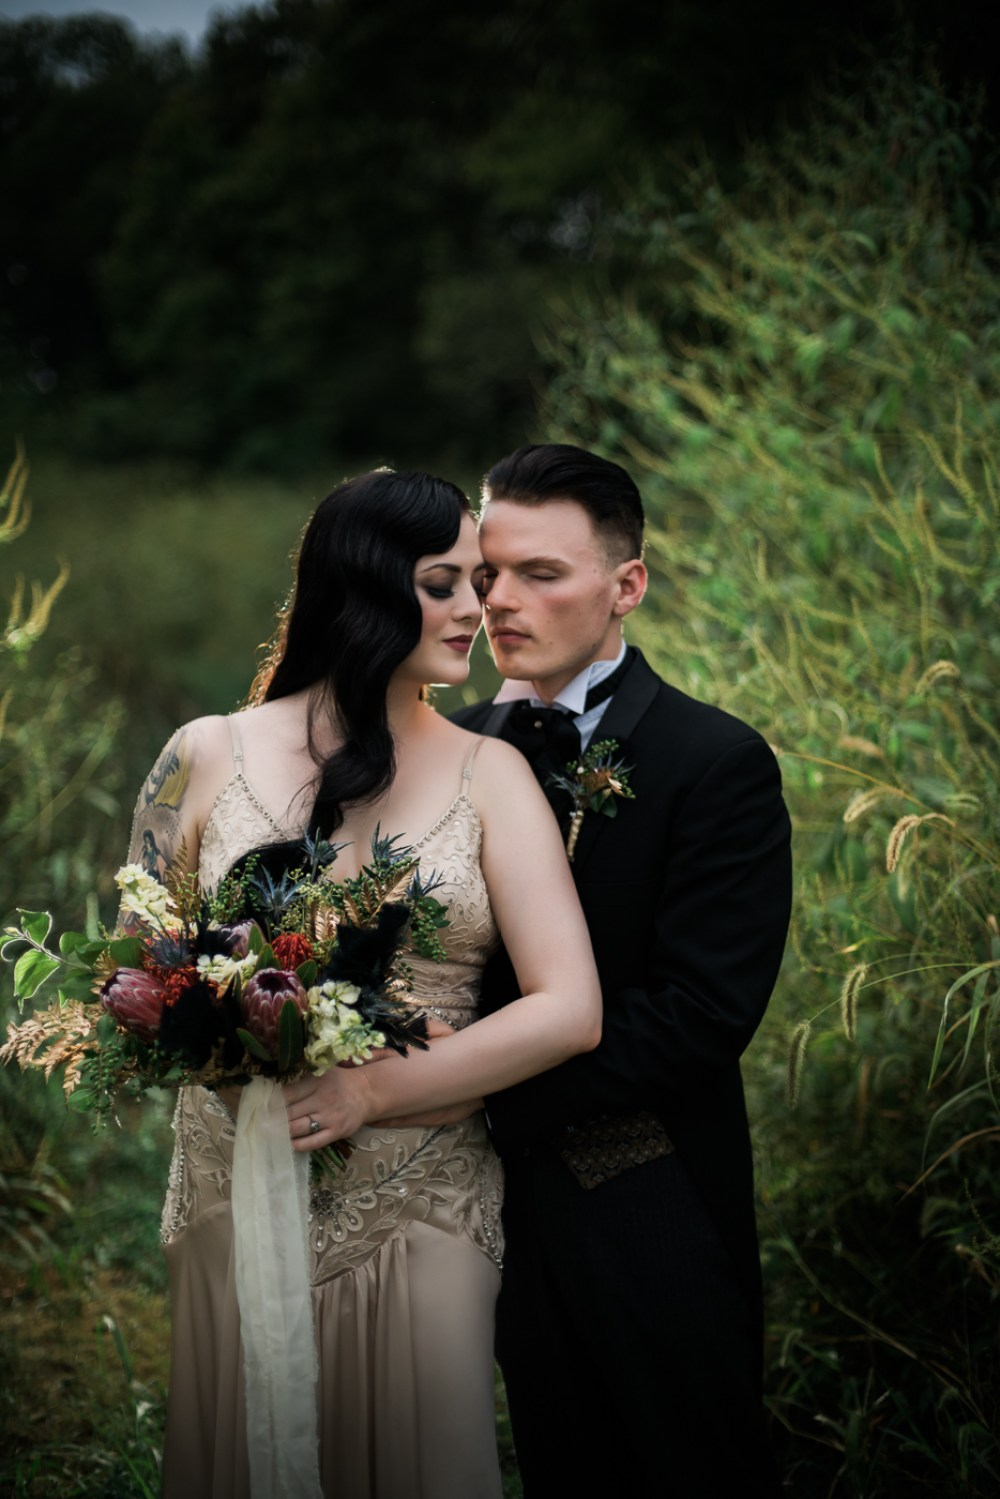 and-how-imaging-gothic-inspired-styled-shoot-gothic-wedding-1920s-theme-wedding-1920s-inspired-styled-shoot-halloween-styled-shoot-gothic-inspired-wedding, gothic inspired styled shoot